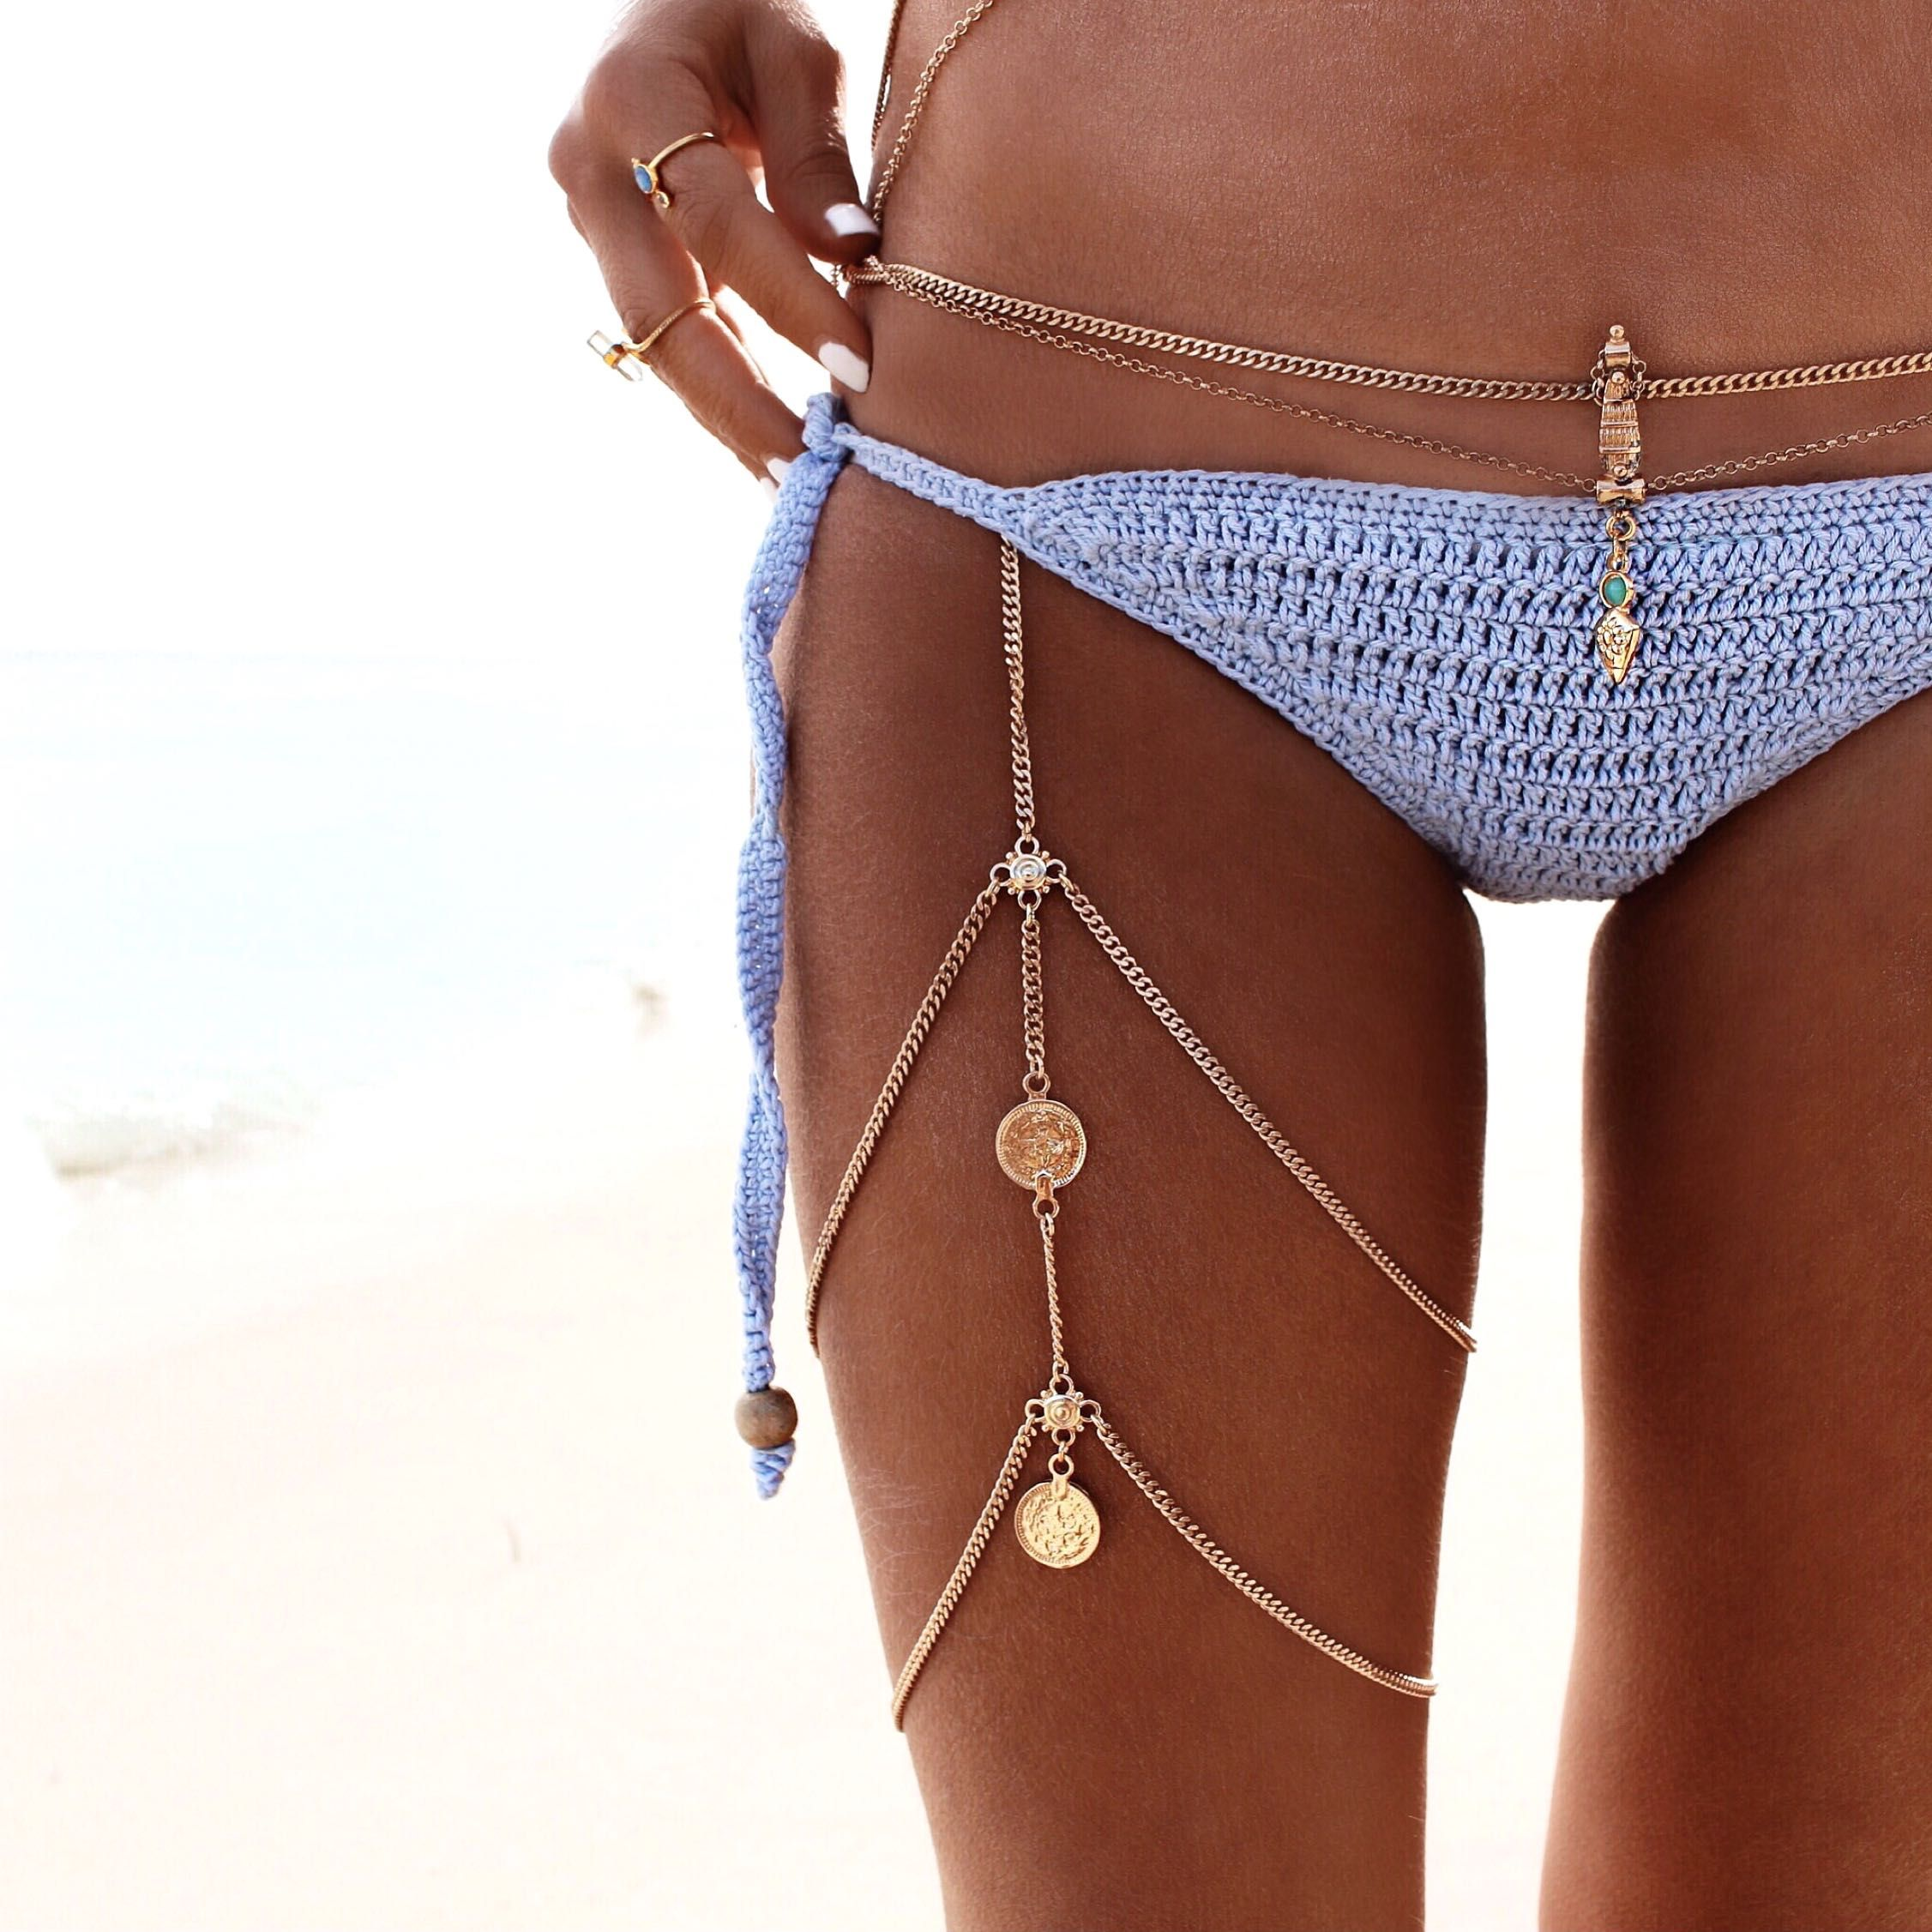 Sexy Antique Silver Gold Stretchy Bikini Thigh Leg Tassel Chains Coins Pendant Multilayer Crossover Harness Garter Body Jewelry wK1InHSXNx